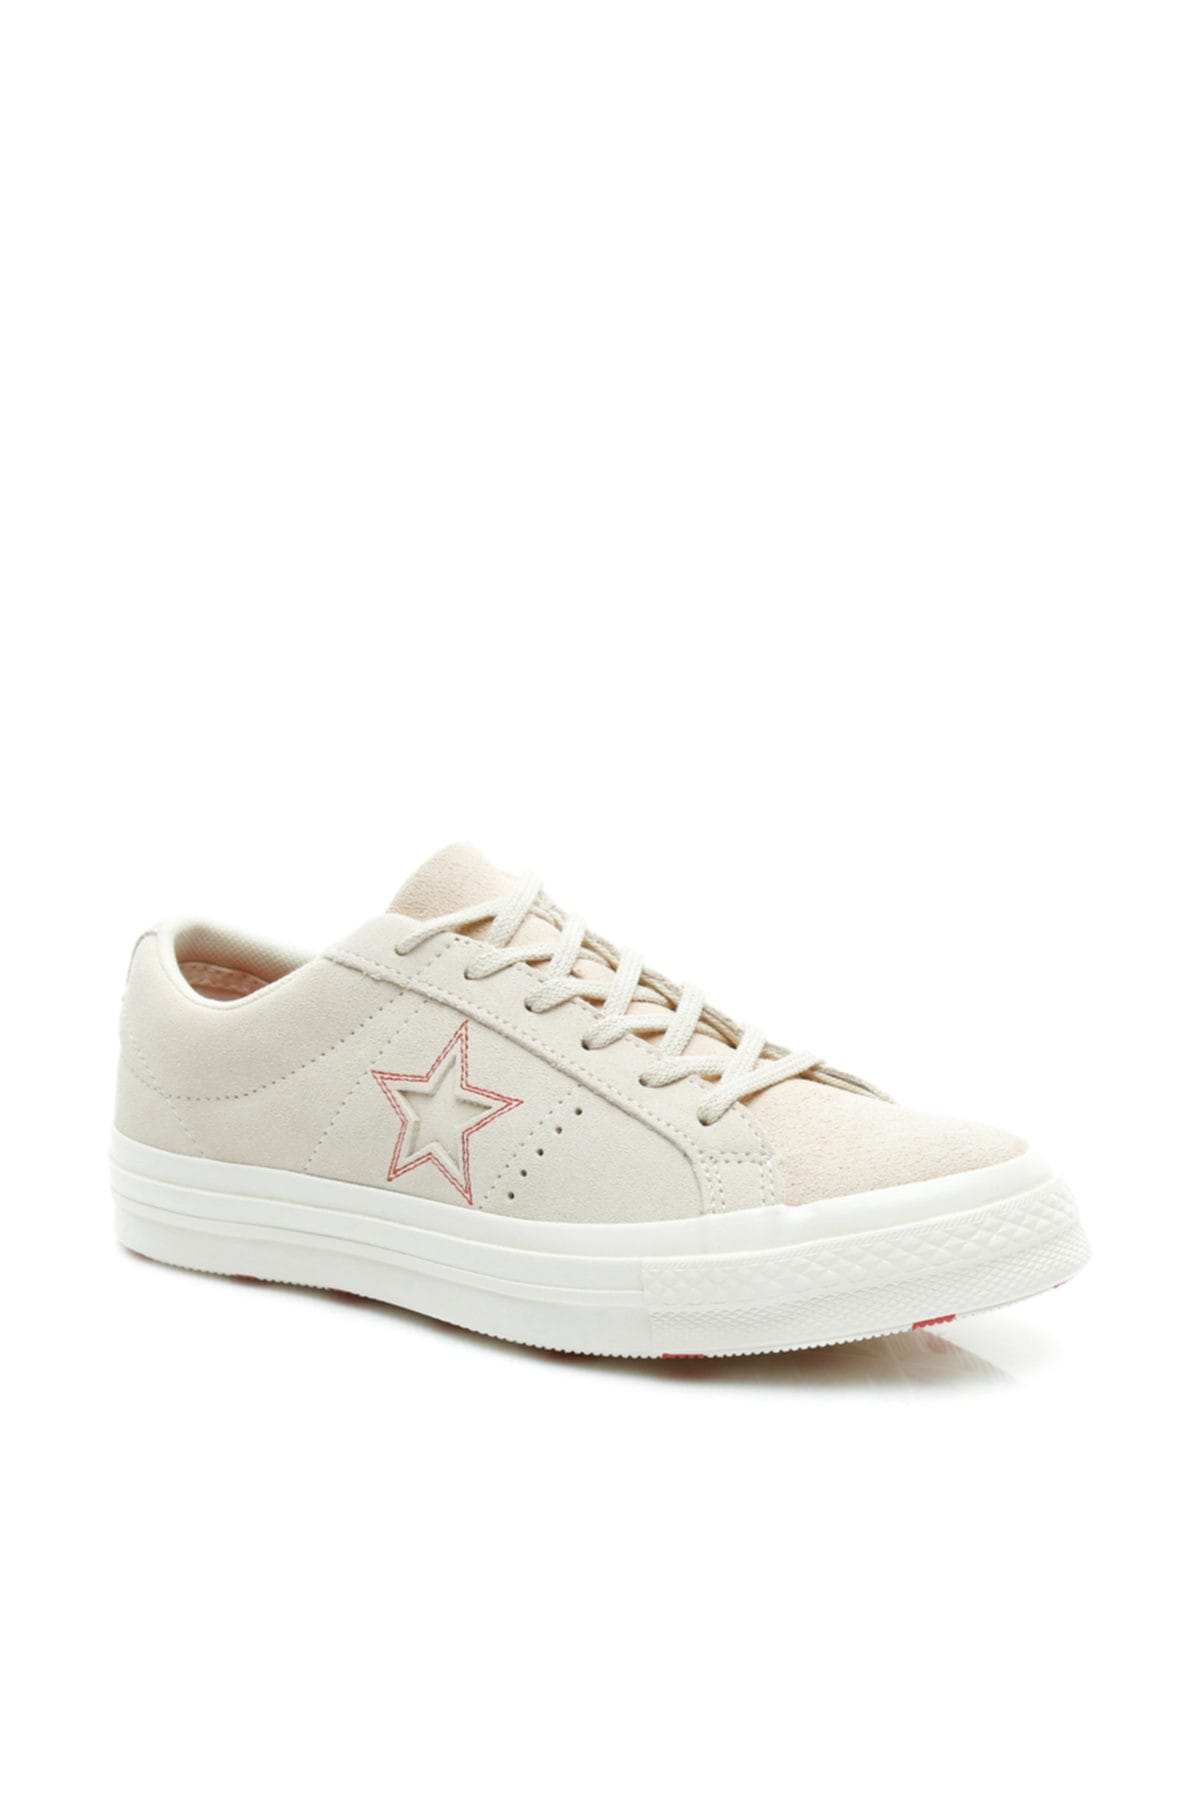 kadin-one-star-love-metallic-krem-sneaker-163189c-5043972-c-281-krem